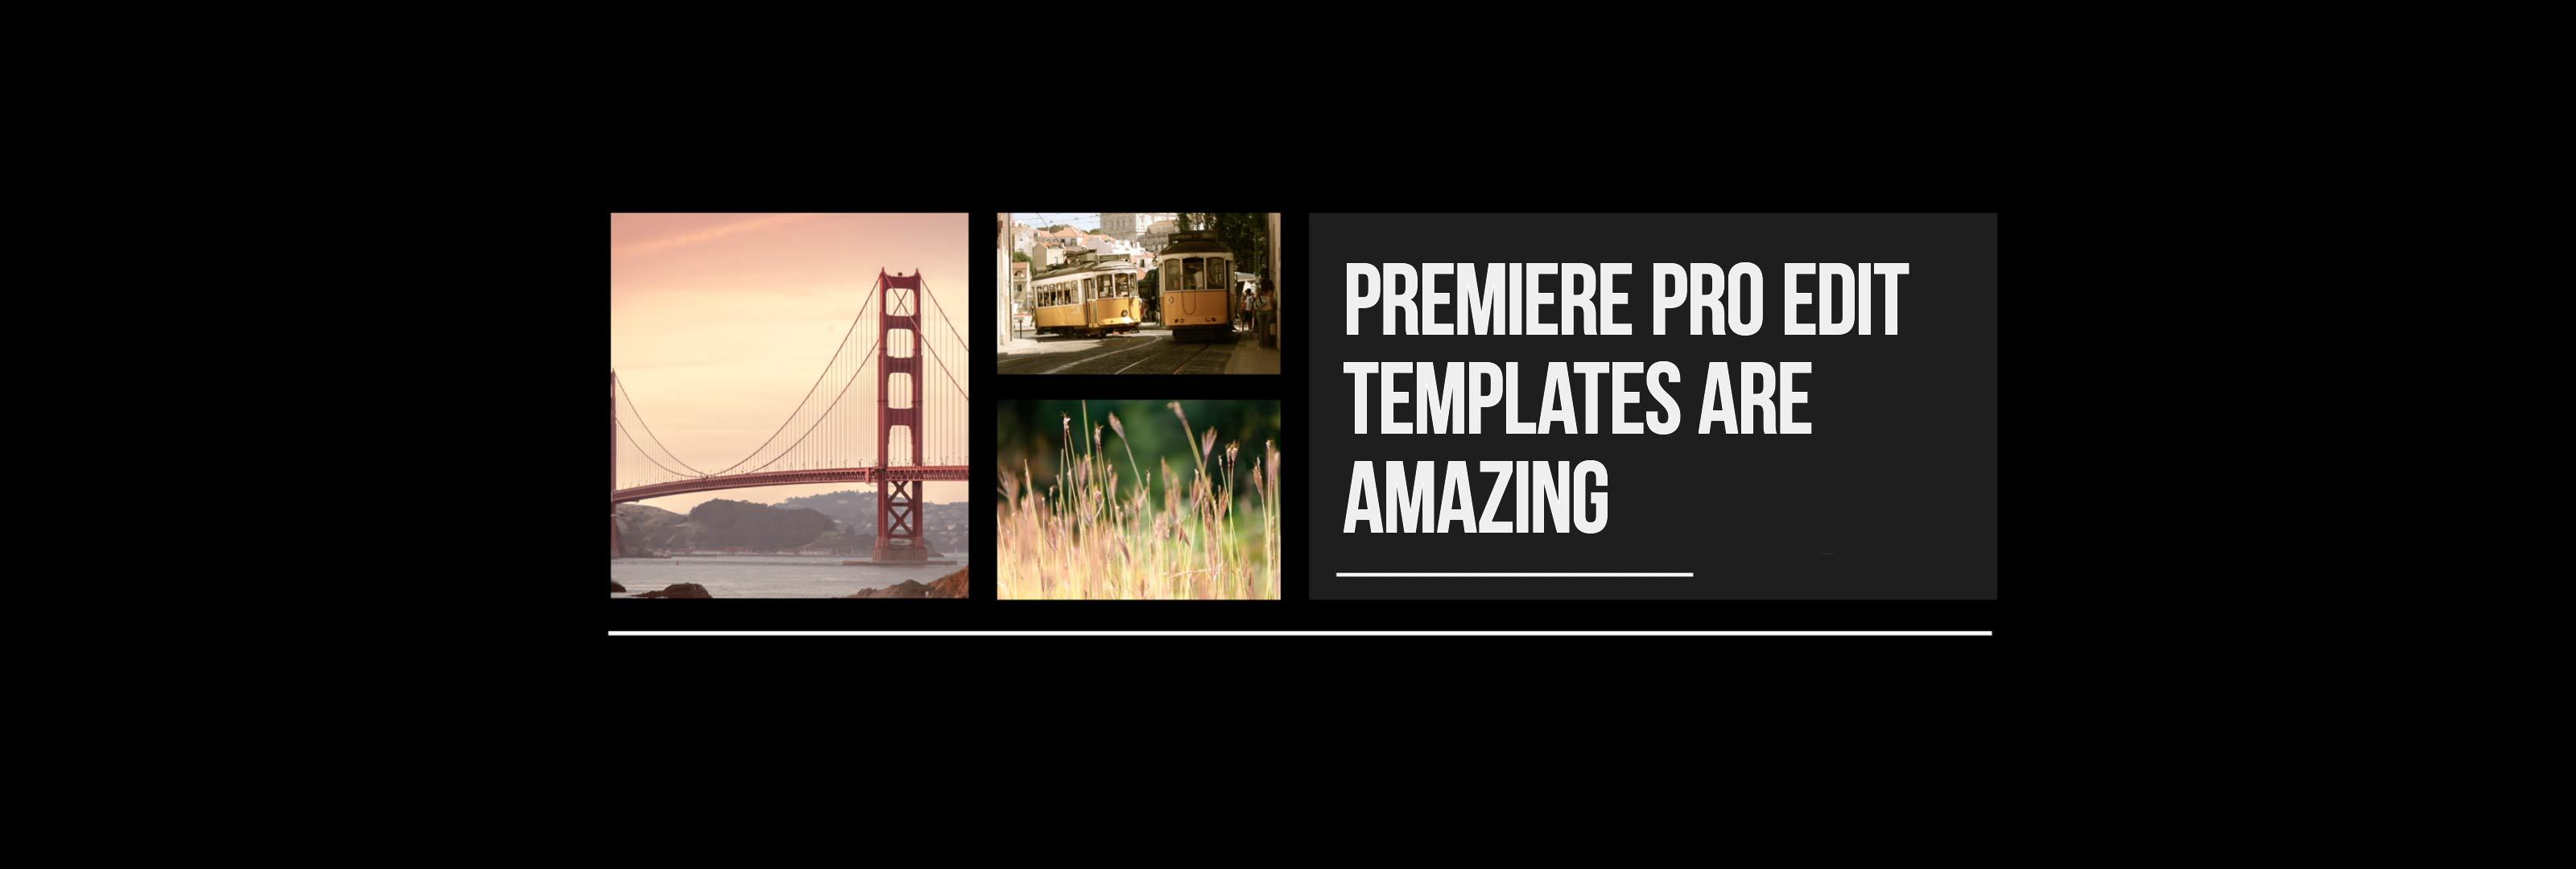 Premiere Pro Templates Geccetackletartsco - Premiere pro motion graphics templates